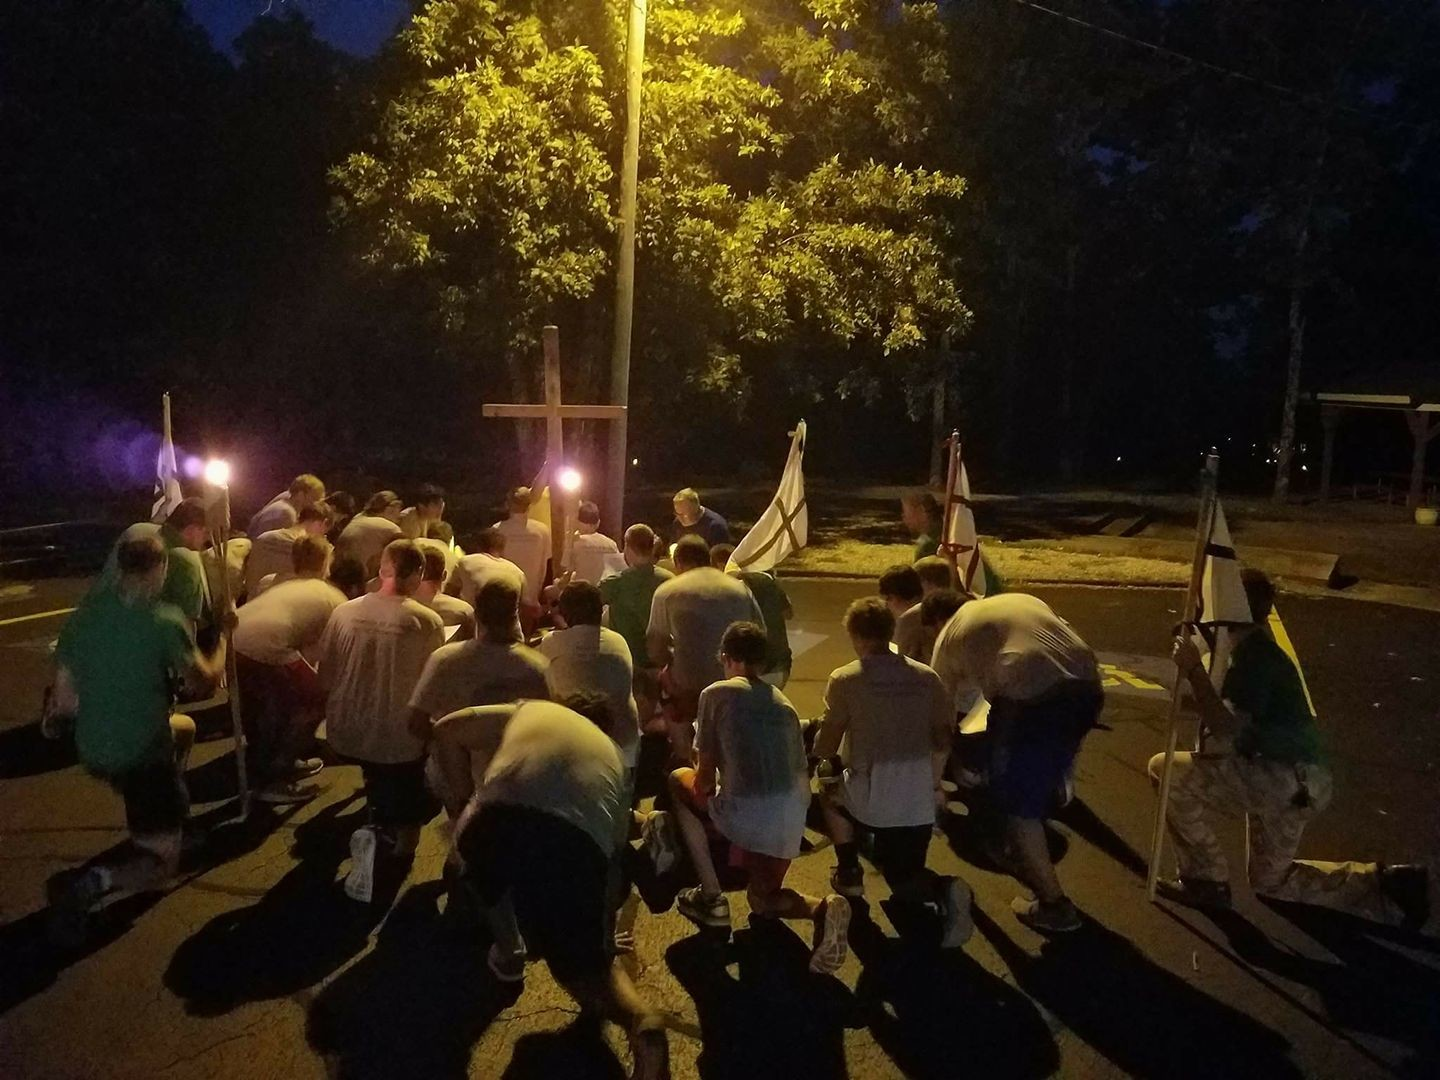 Participants in one of last year's Camp Maccabee sessions pray Night Prayer outside before heading to bed.